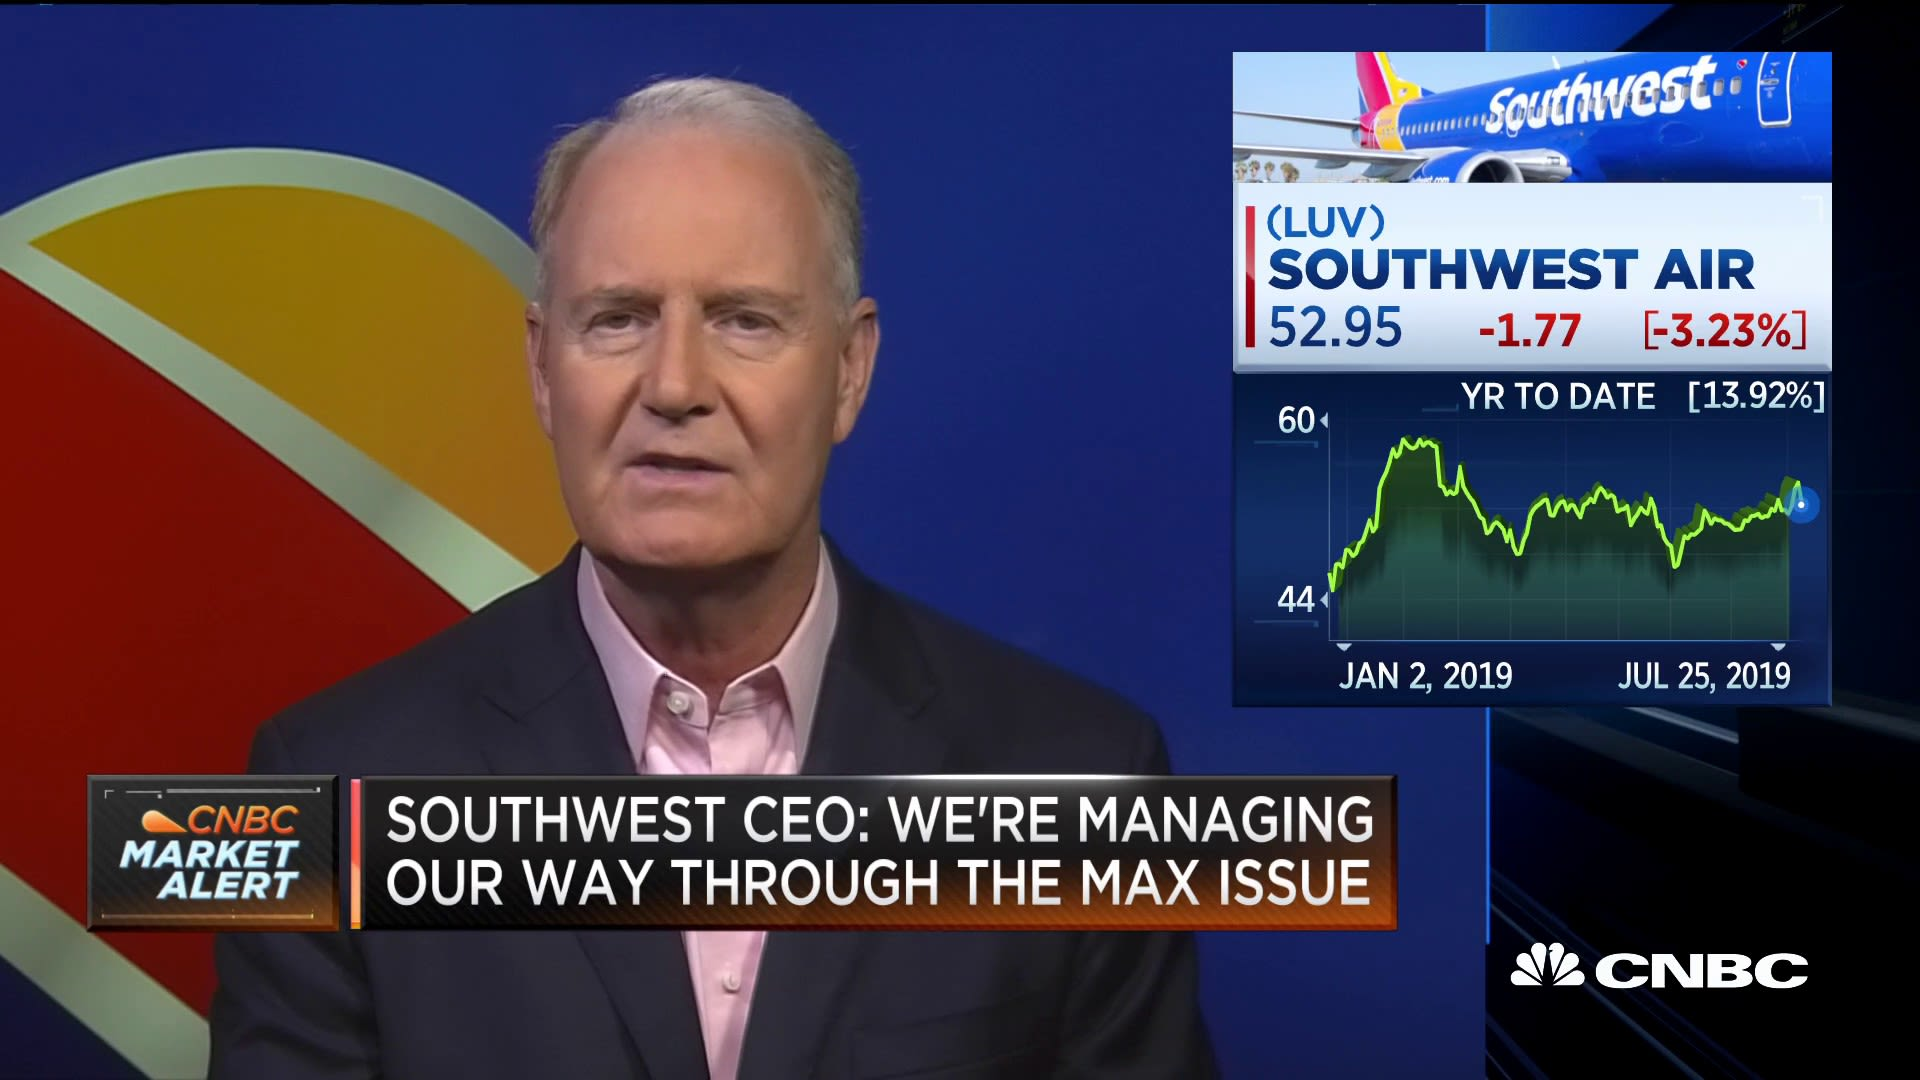 Southwest CEO Gary Kelly on the decision to stop service at Newark